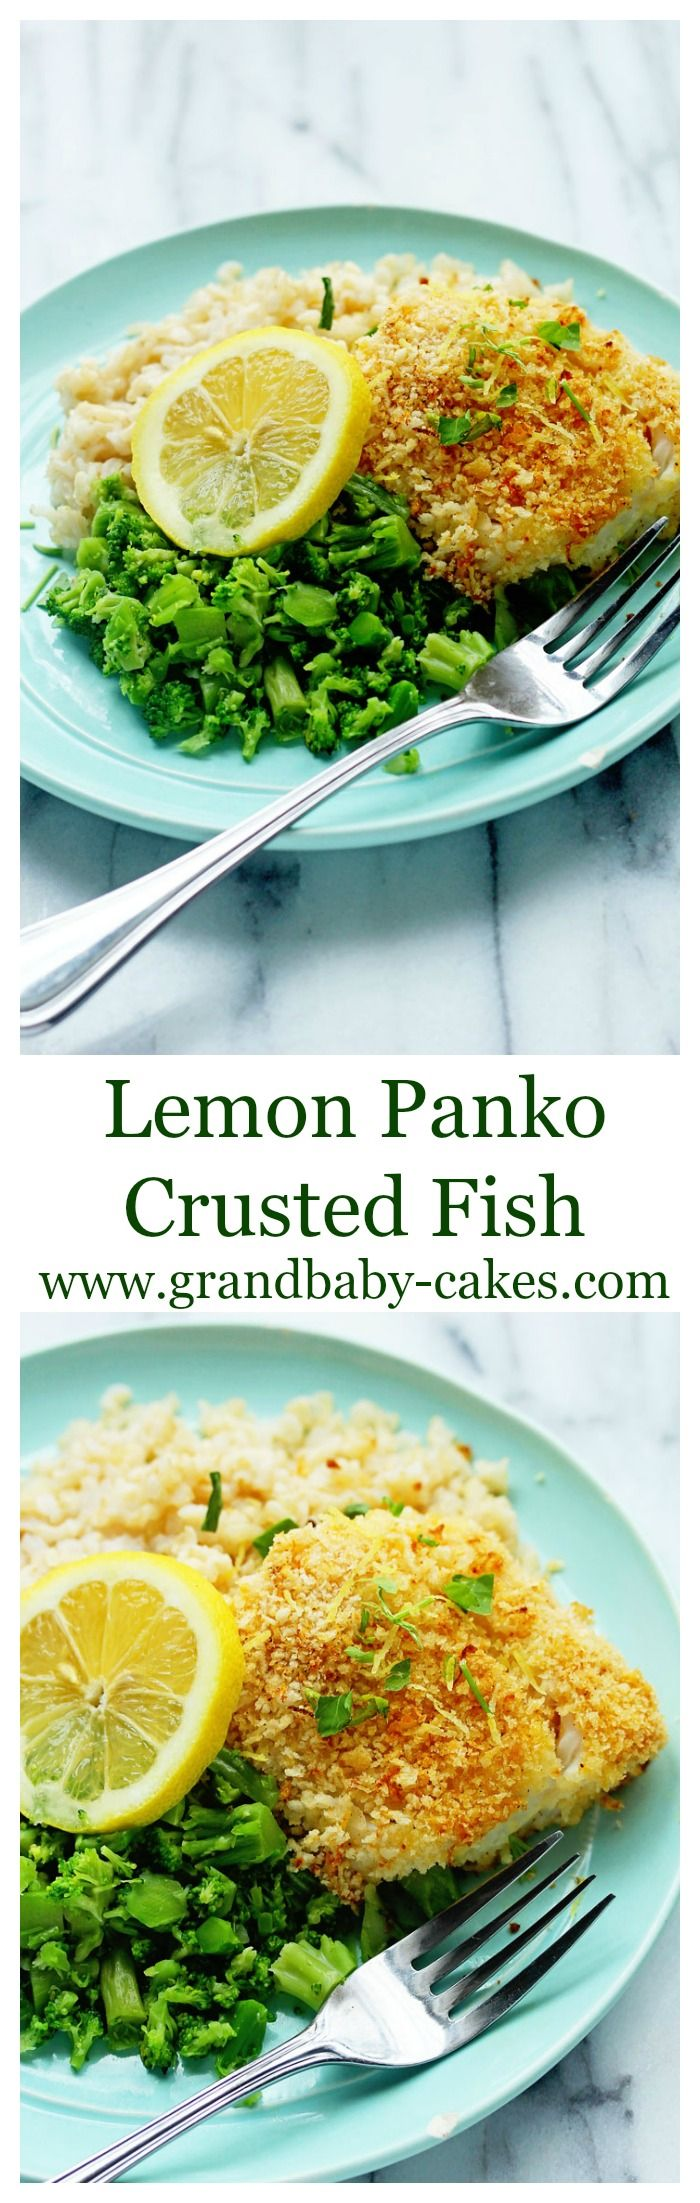 Lemon Panko Crusted Fish - the easiest and most delightful recipe ever, not to mention the tastiest! ~ http://www.grandbaby-cakes.com